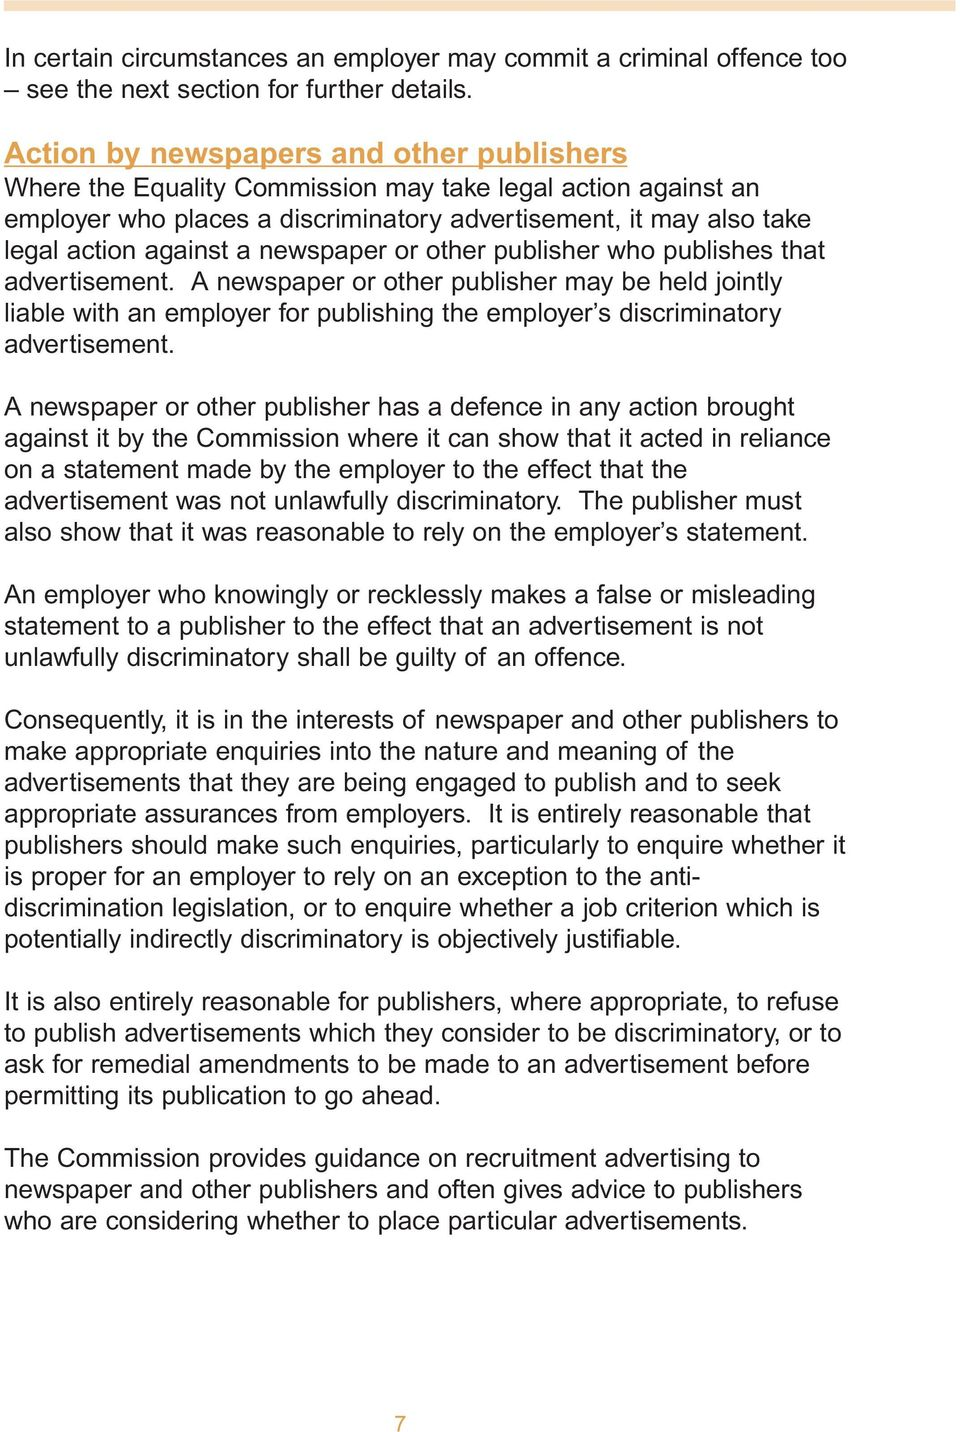 newspaper or other publisher who publishes that advertisement. A newspaper or other publisher may be held jointly liable with an employer for publishing the employer s discriminatory advertisement.